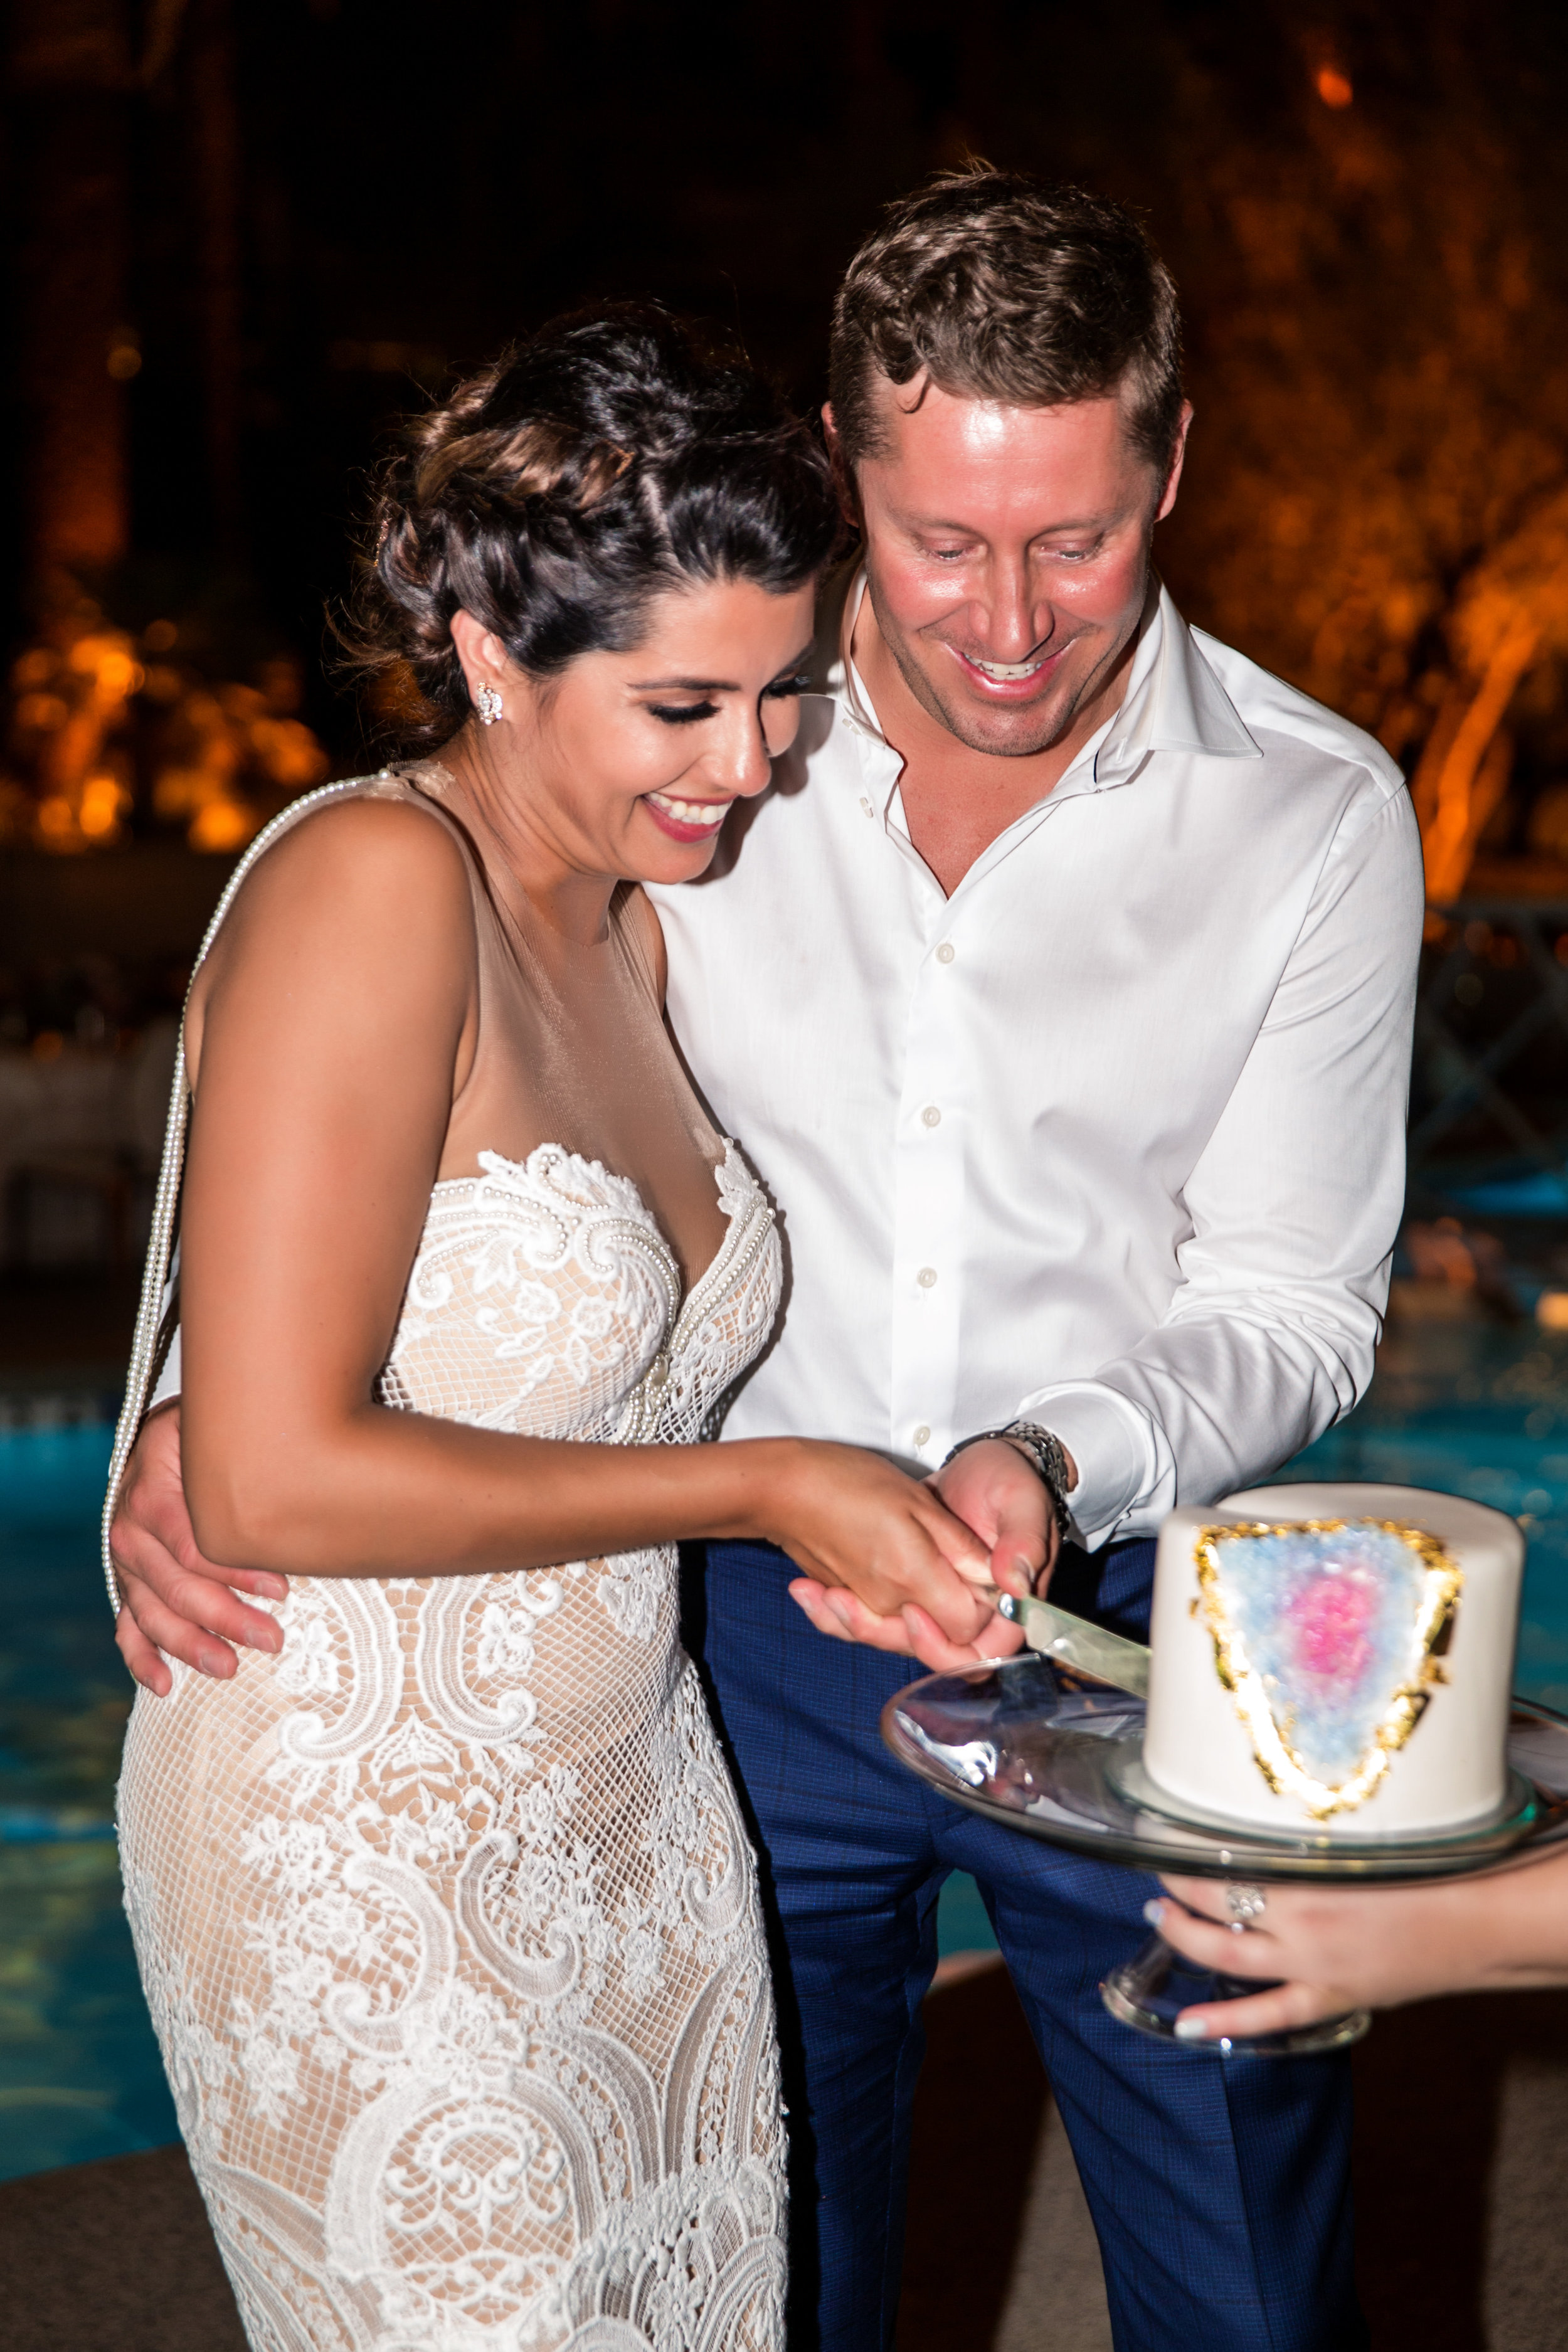 Cutting the top tier of the wedding cake.First dance on bridge over pool.Jewel toned wedding centerpieces with gold accents.Wedding Planning by  Andrea Eppolito Events  · Photography by  Shandro Photo   · Wedding Venue  Four Seasons Las Vegas  · Floral and Decor by  Destination by Design  · Cake by  Four Seasons Las Vegas  · Chandeliers and Lighting by  LED Unplugged  · Dress by  Berta  and Menu by Alligator Soup